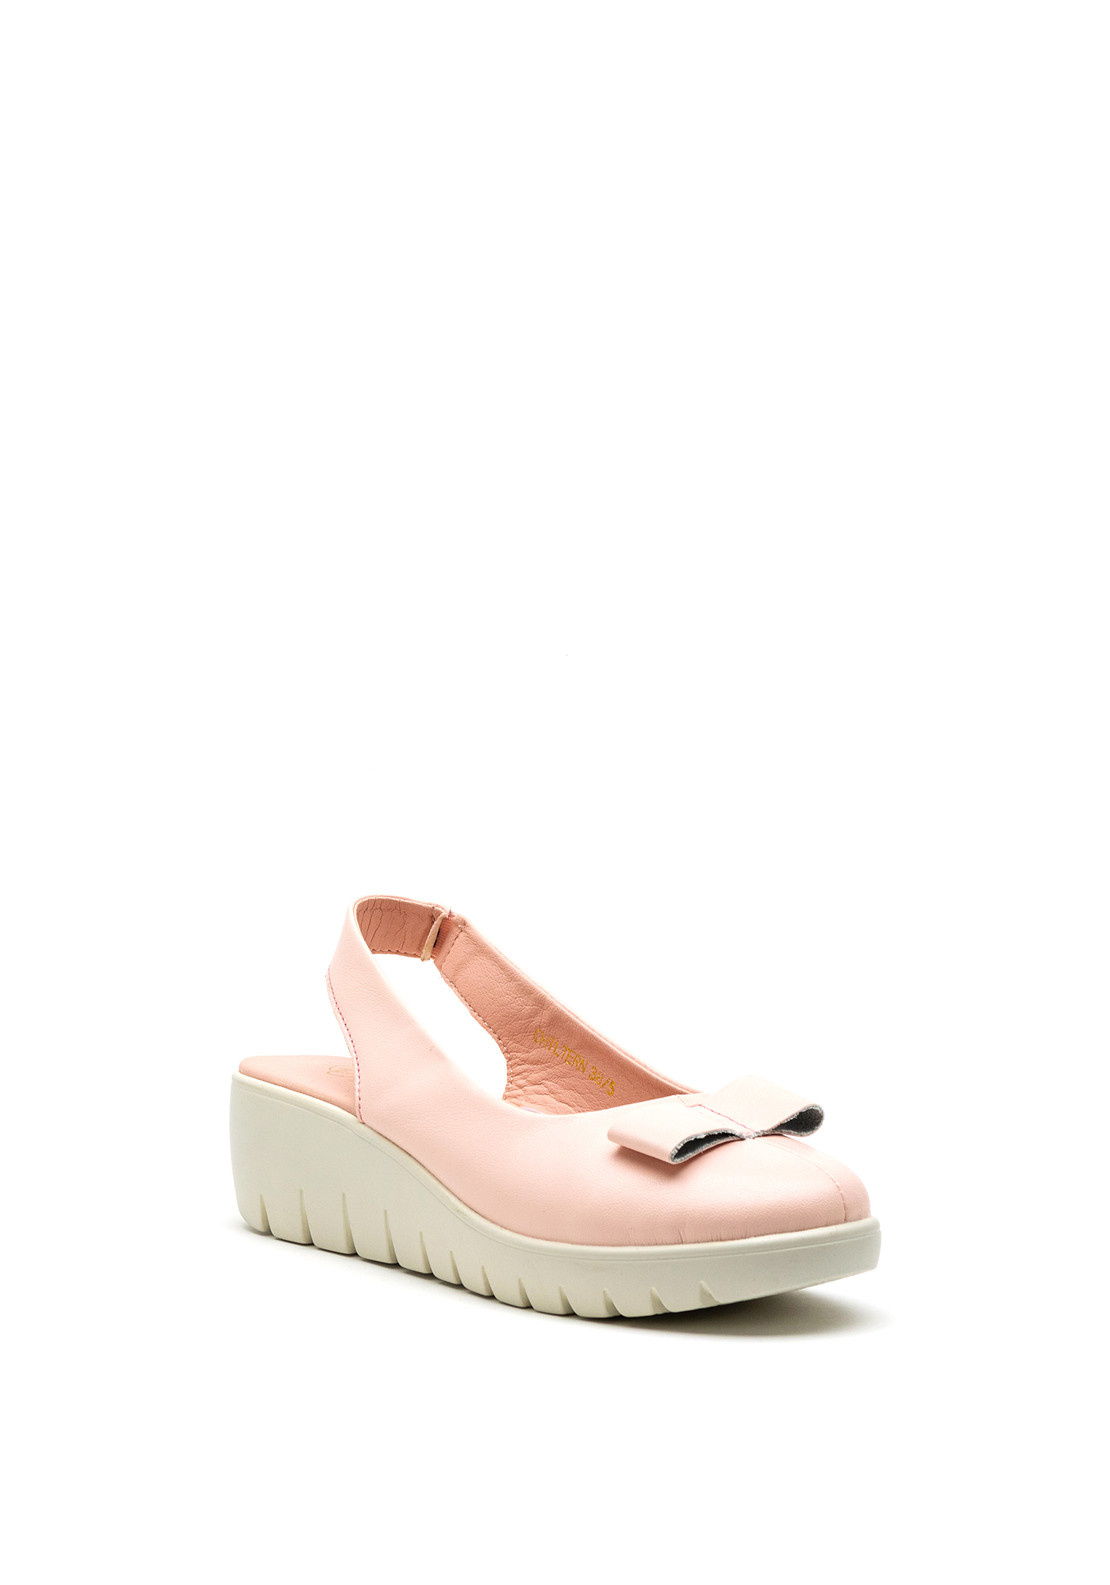 Kate Appleby Chiltern Bow Wedge Shoe, Pink